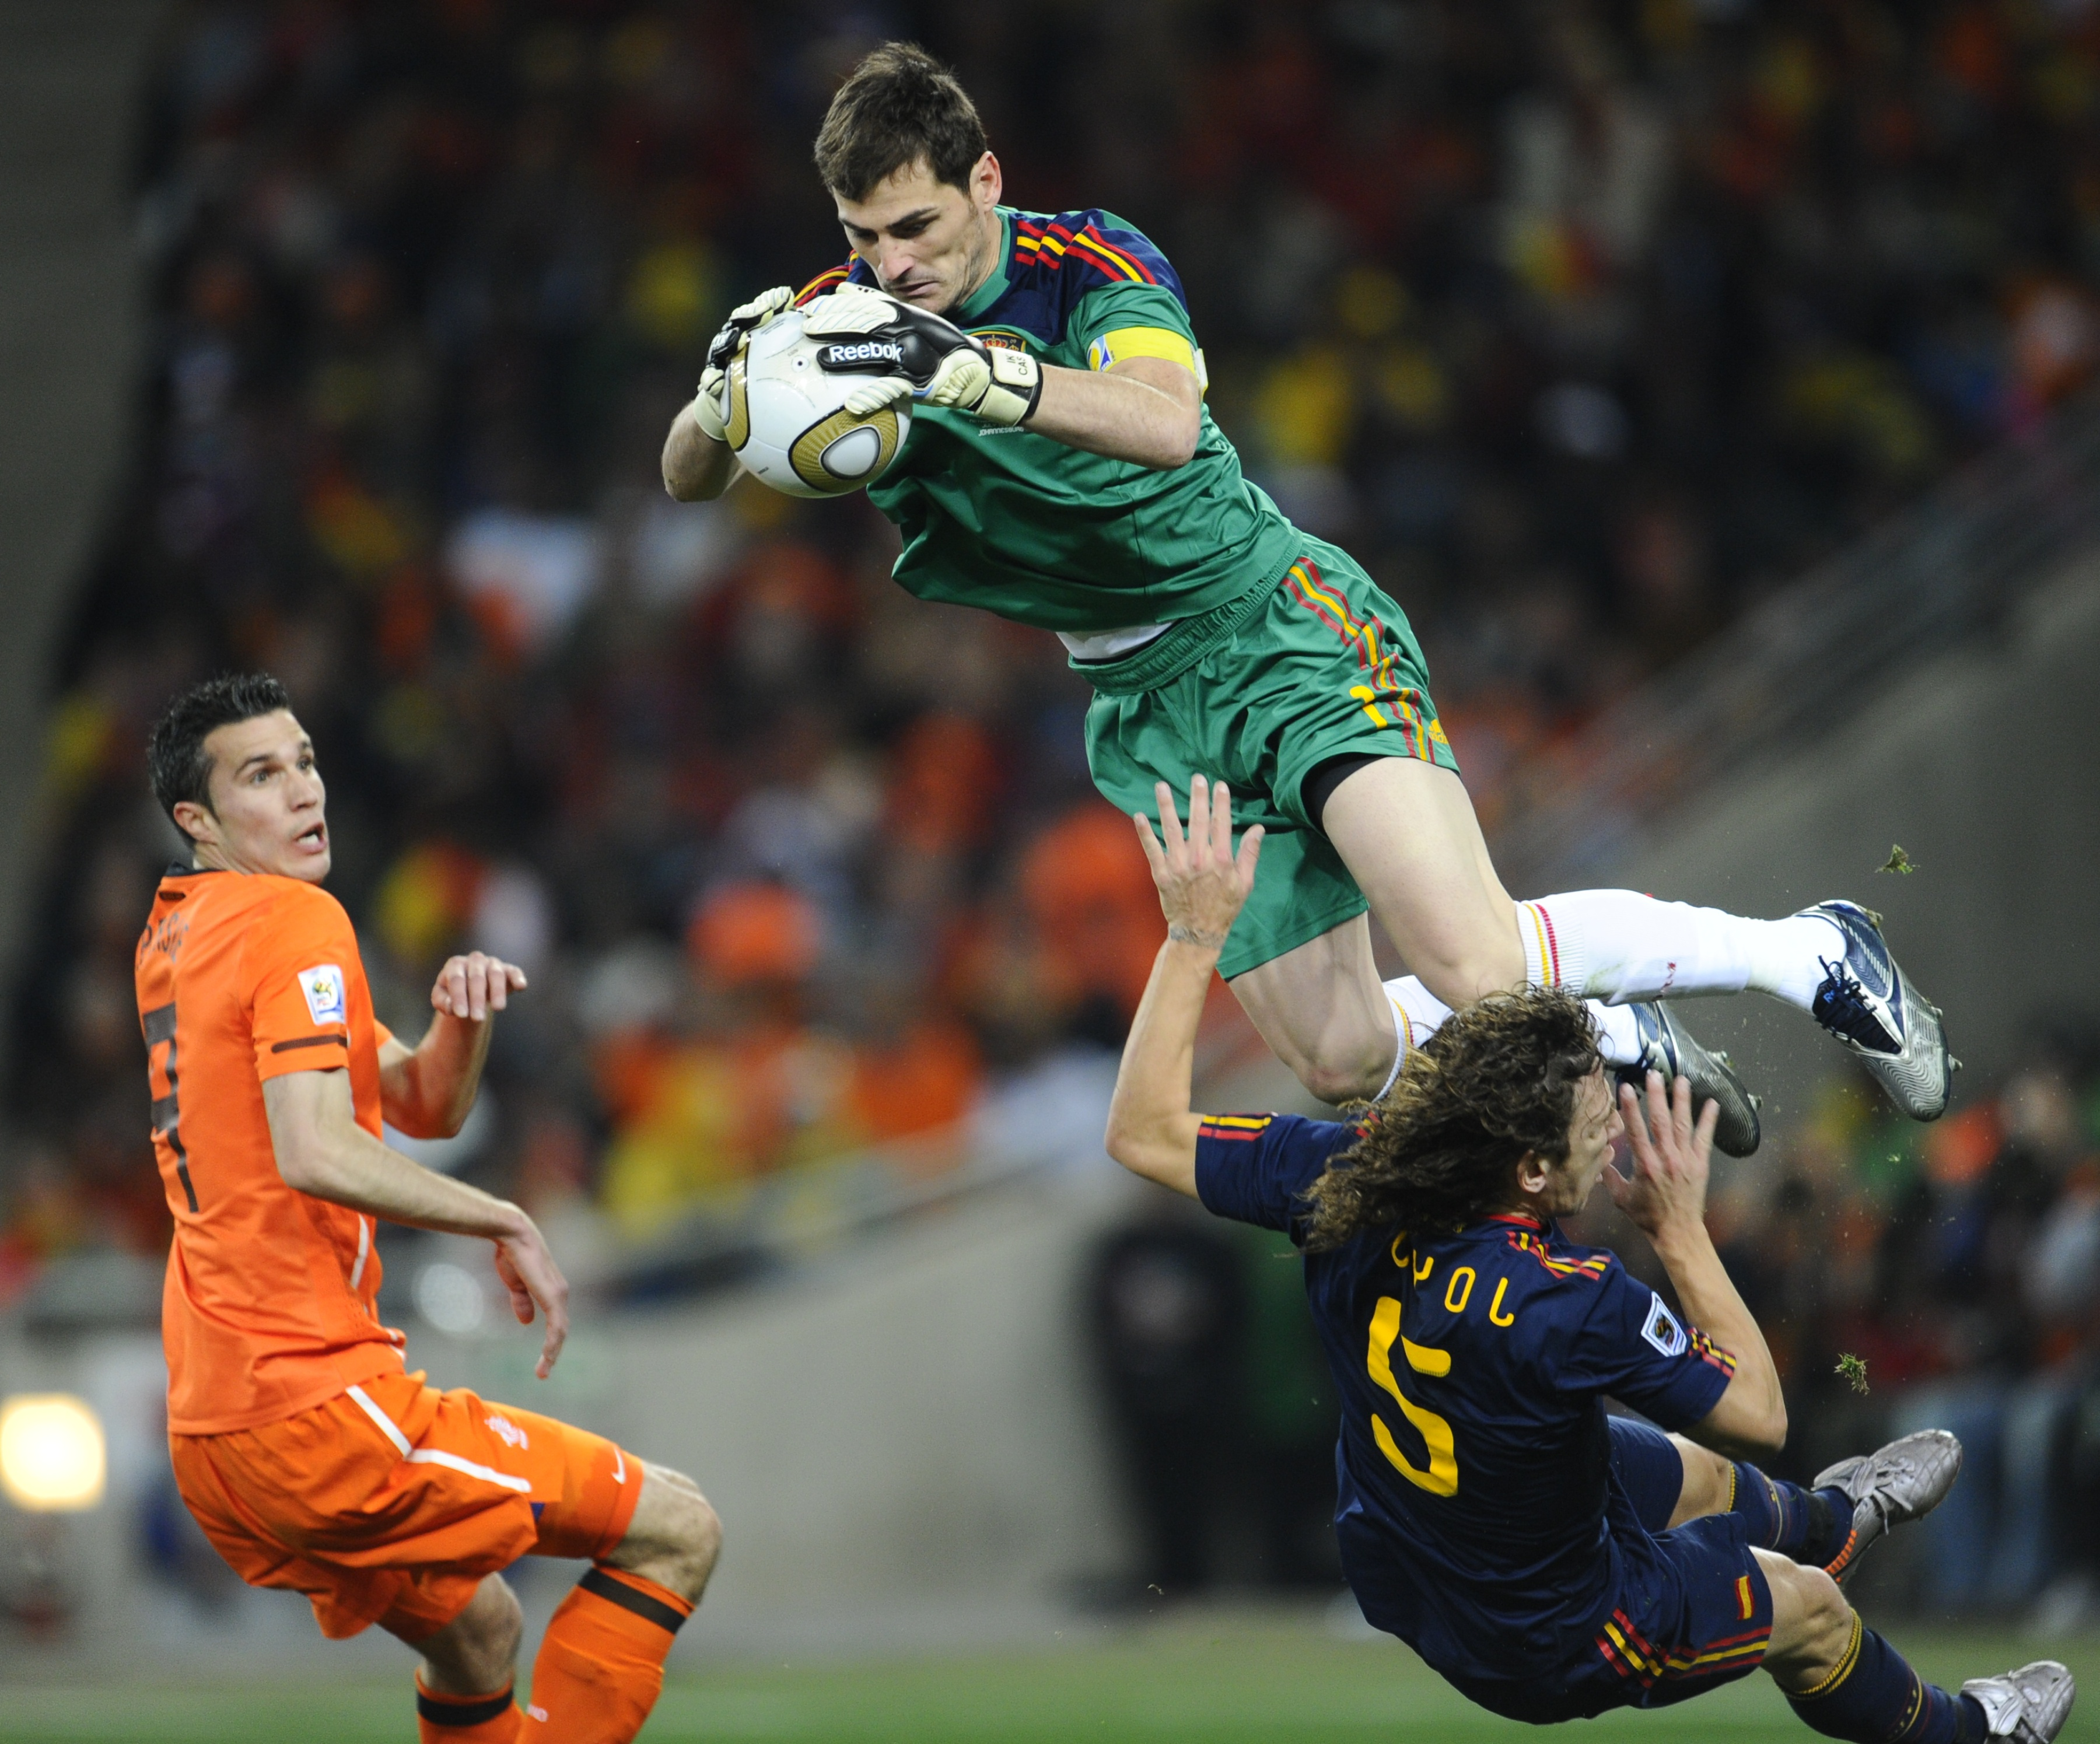 Dhoni Wallpaper With Quotes Iker Casillas Spanish Football Goalkeeper Popopics Com